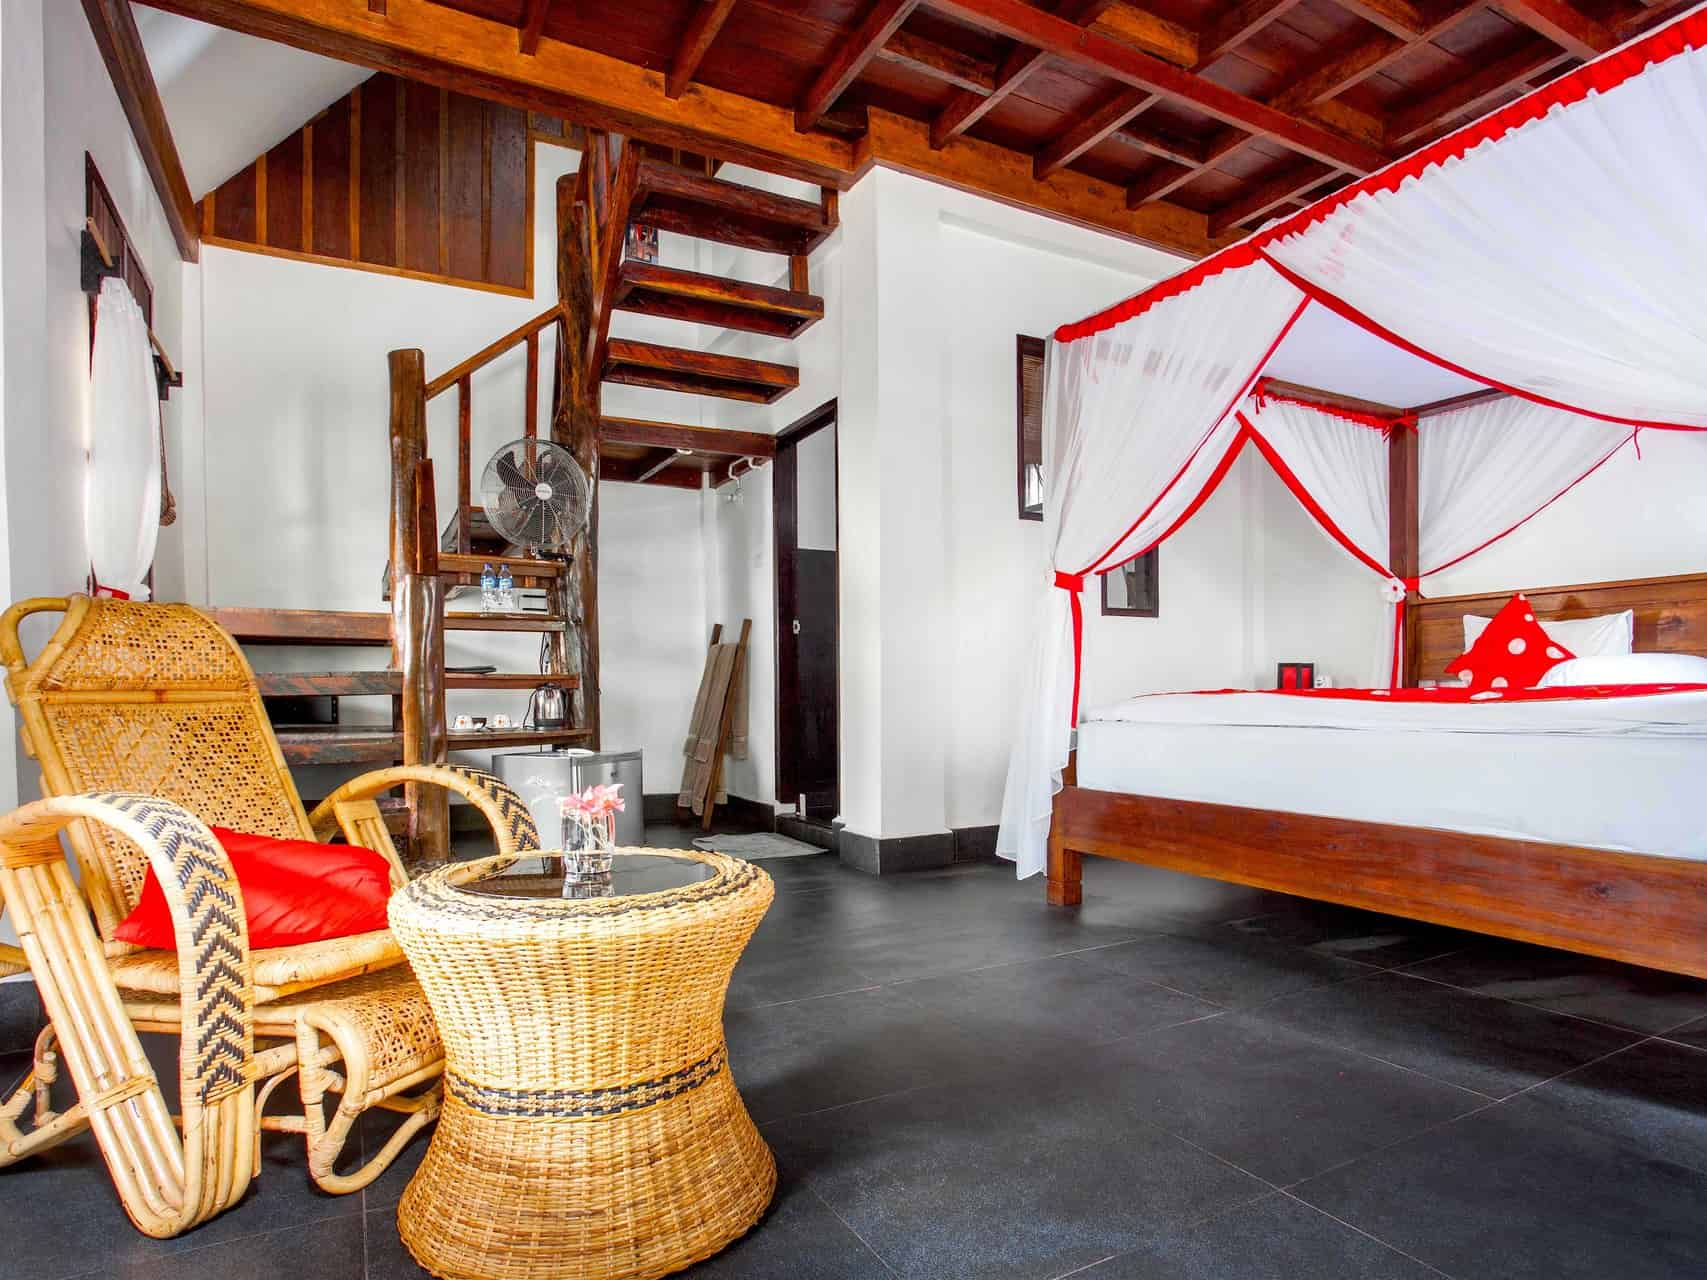 JUNGLE VIEW SUITE AT ECOTRAVEL COTTAGES BUKIT LAWANG - SUMATRA ECOTRAVEL